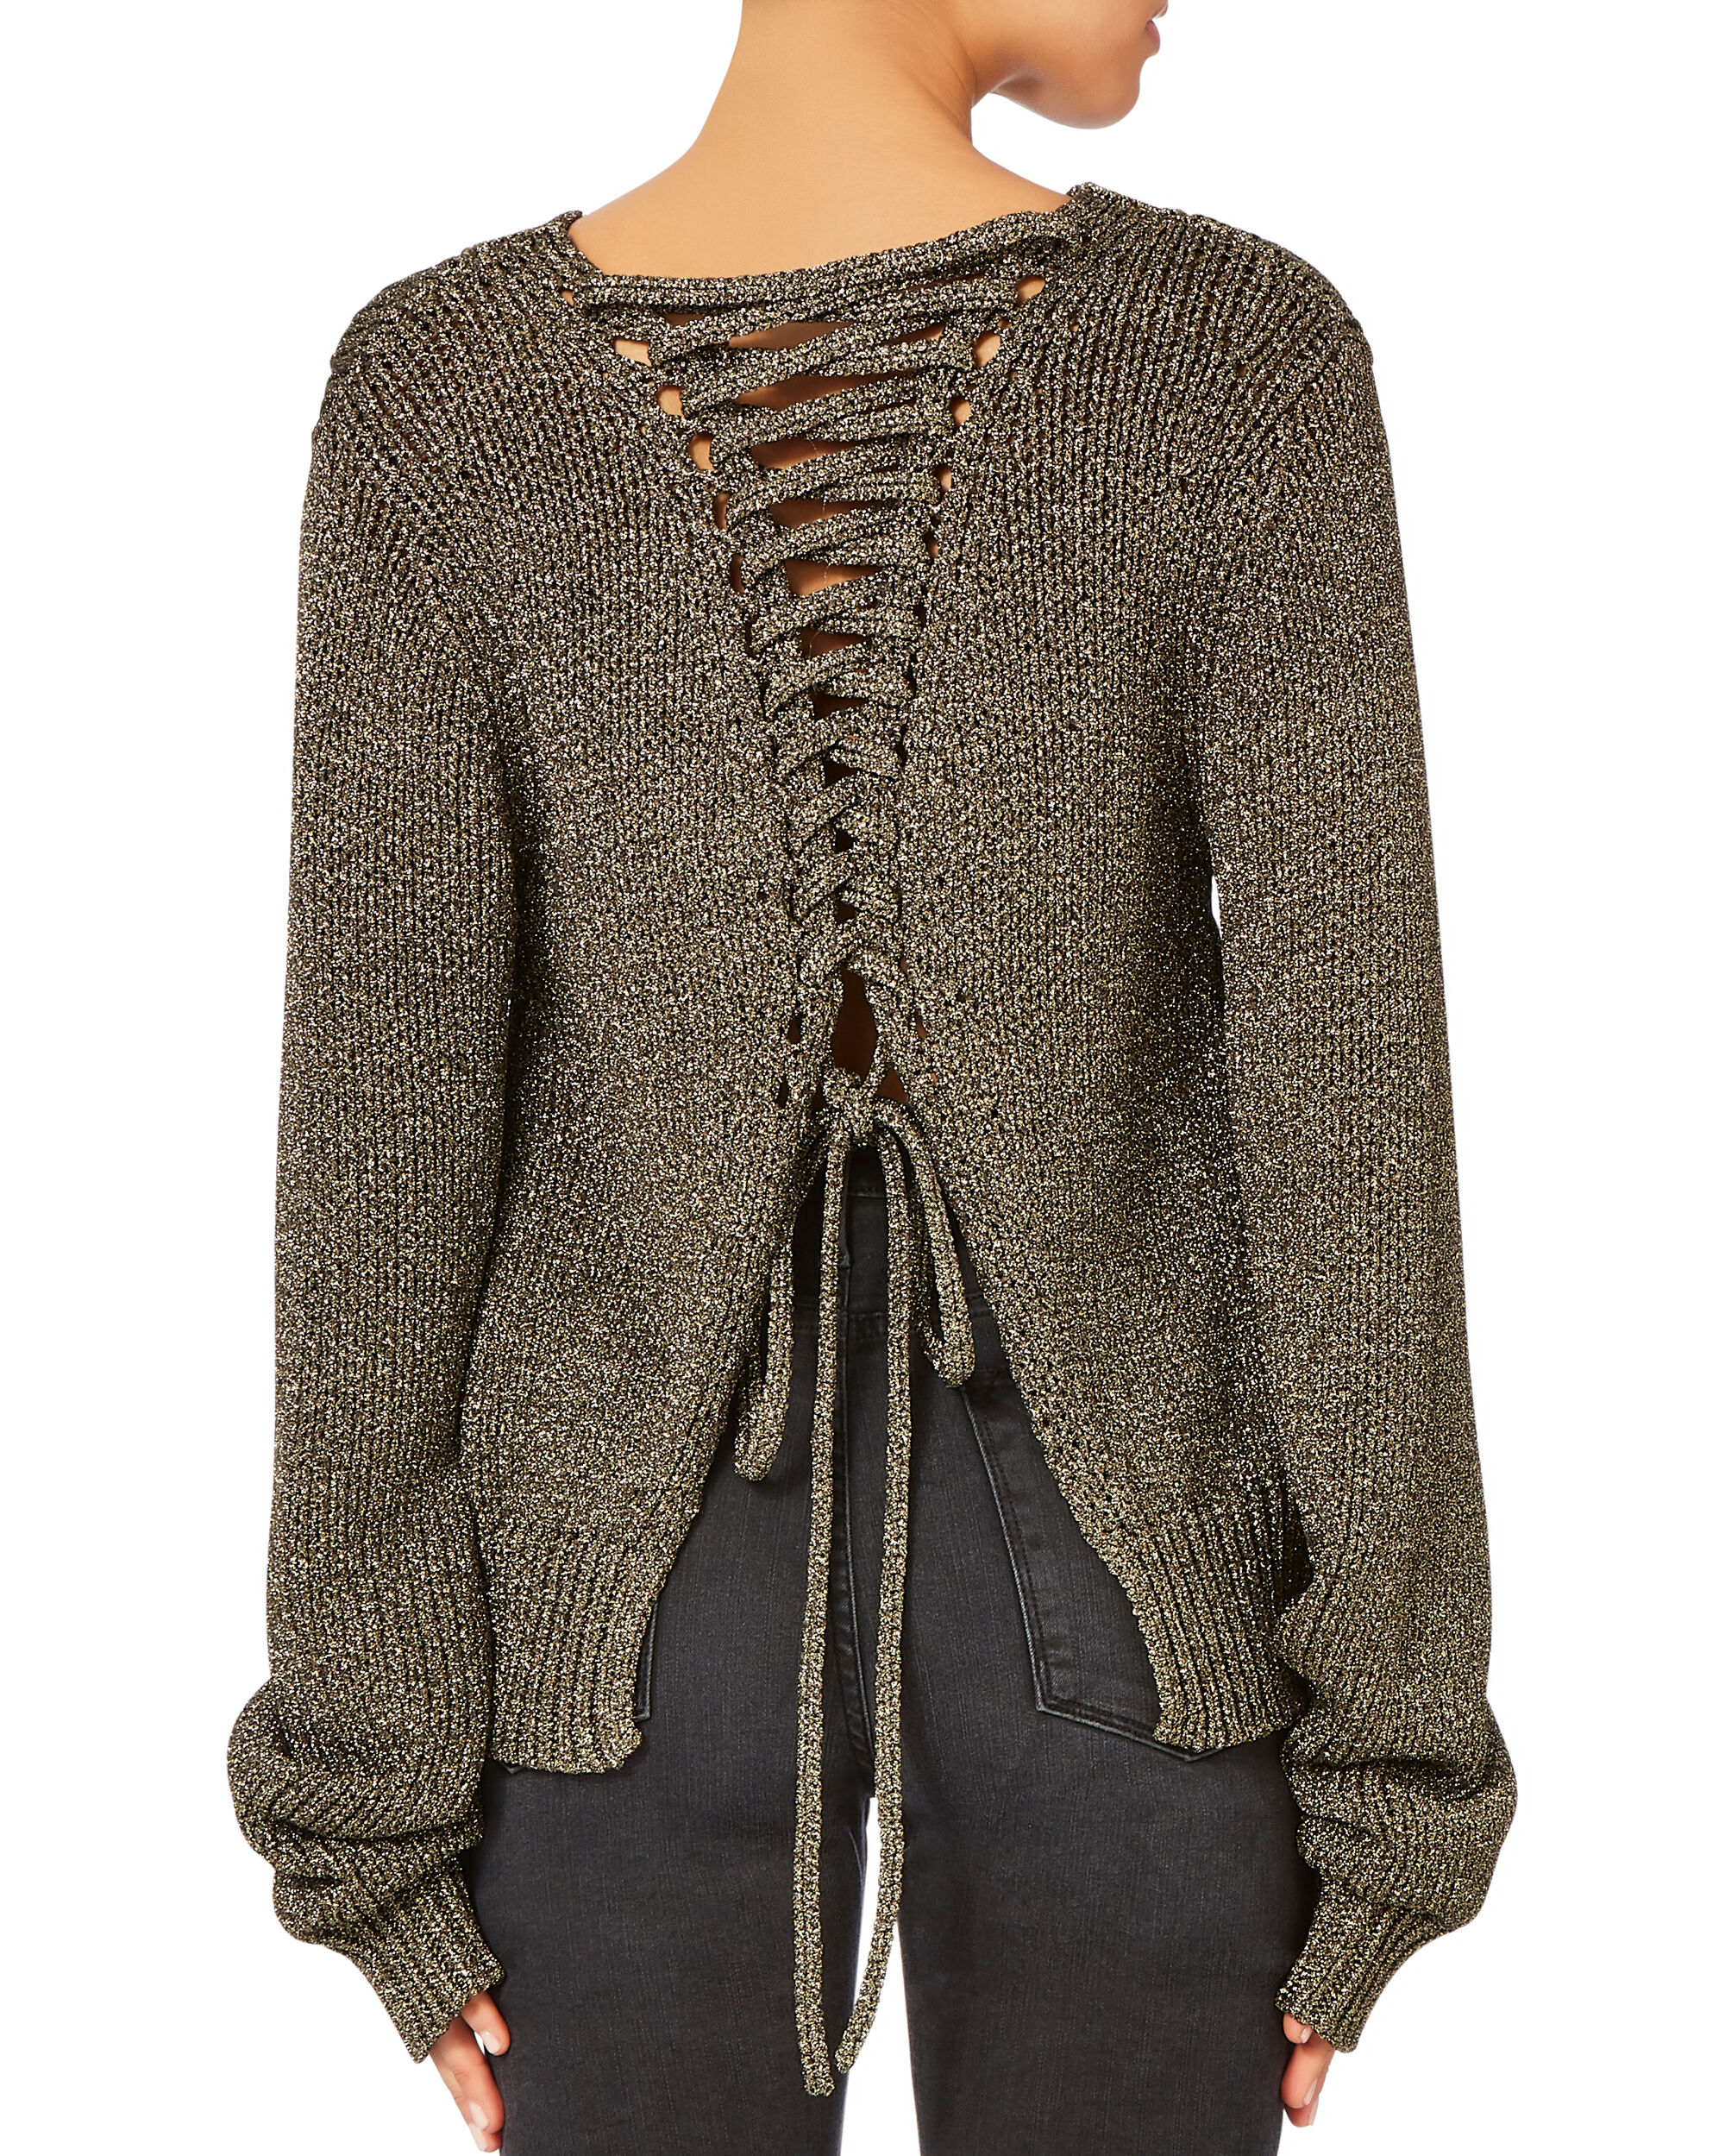 Marjorie Lace-Up Back Lurex Sweater, GOLD, hi-res